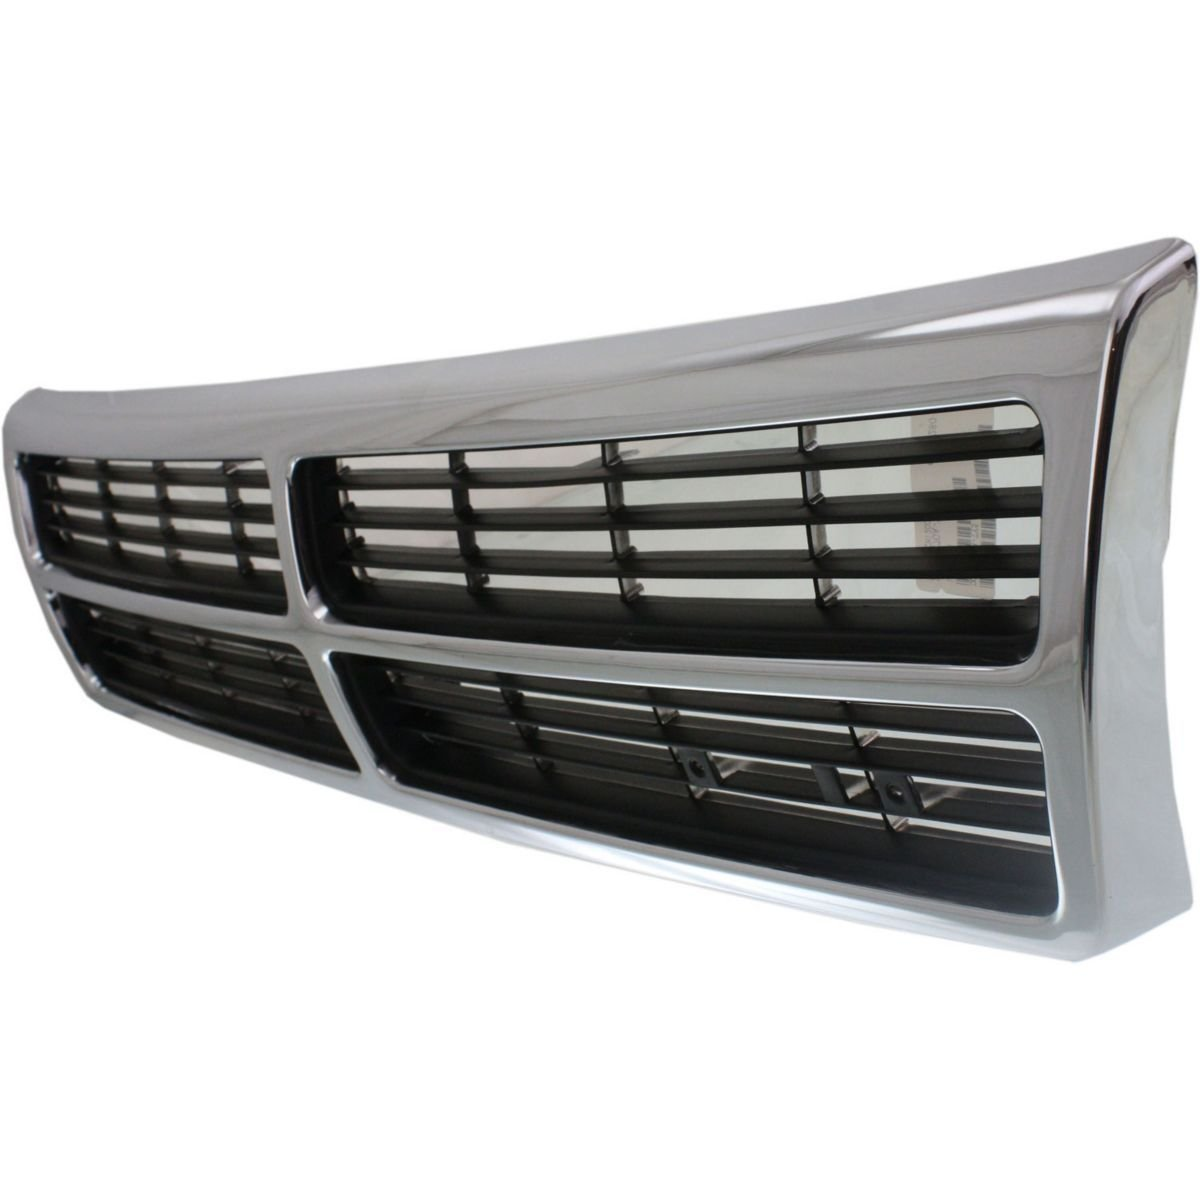 Diften 102-A7289-X01 - New Grille Assembly Grill Chrome Dodge Caravan 95 94 93 92 91 CH1200145 4676010